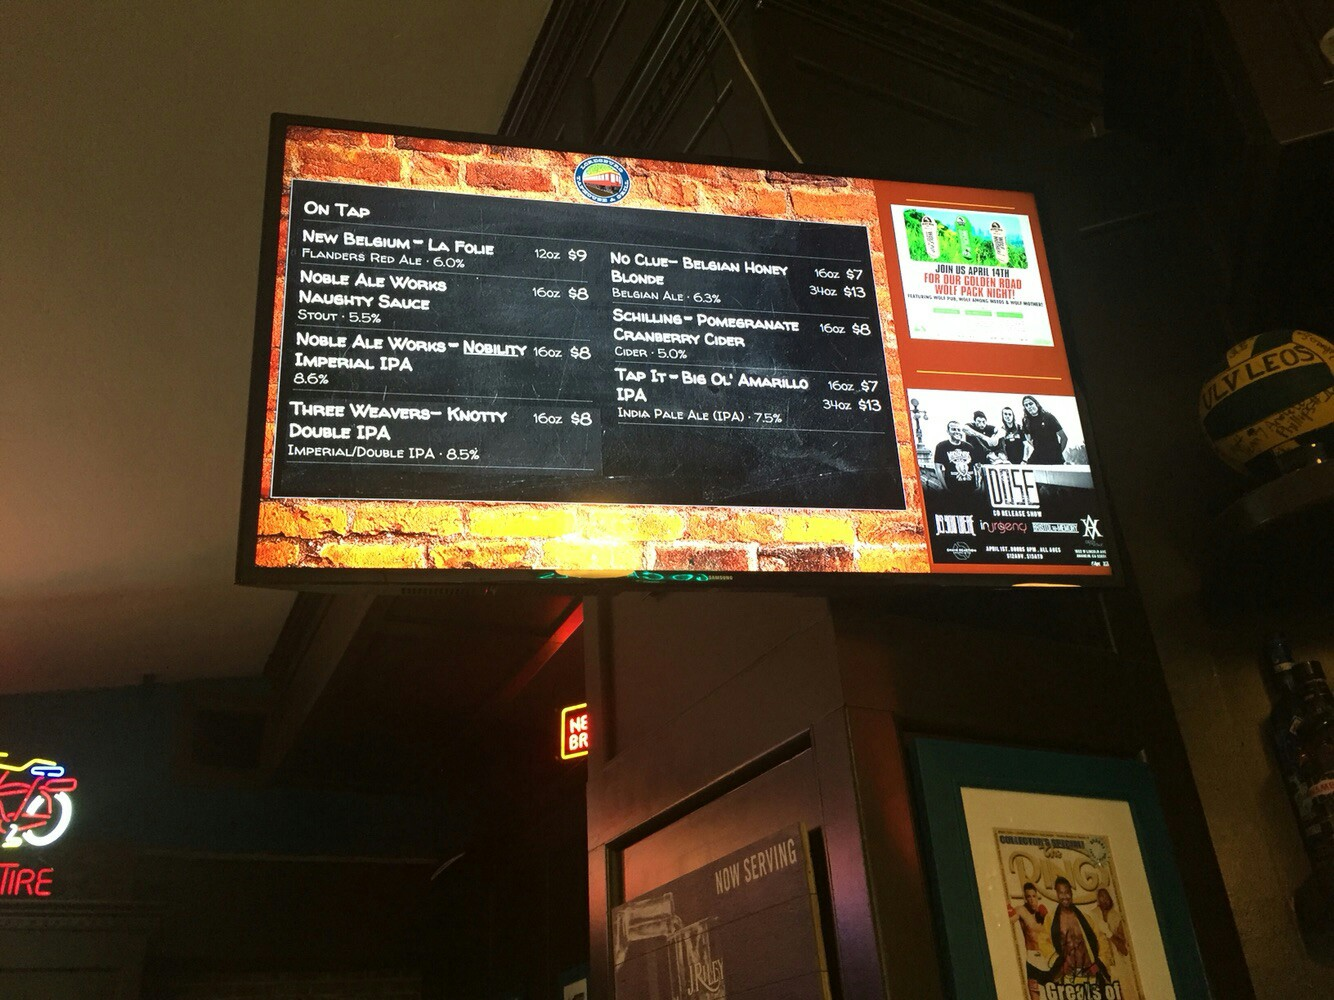 10 Reasons Your Digital Signage Sucks - And How to Fix It